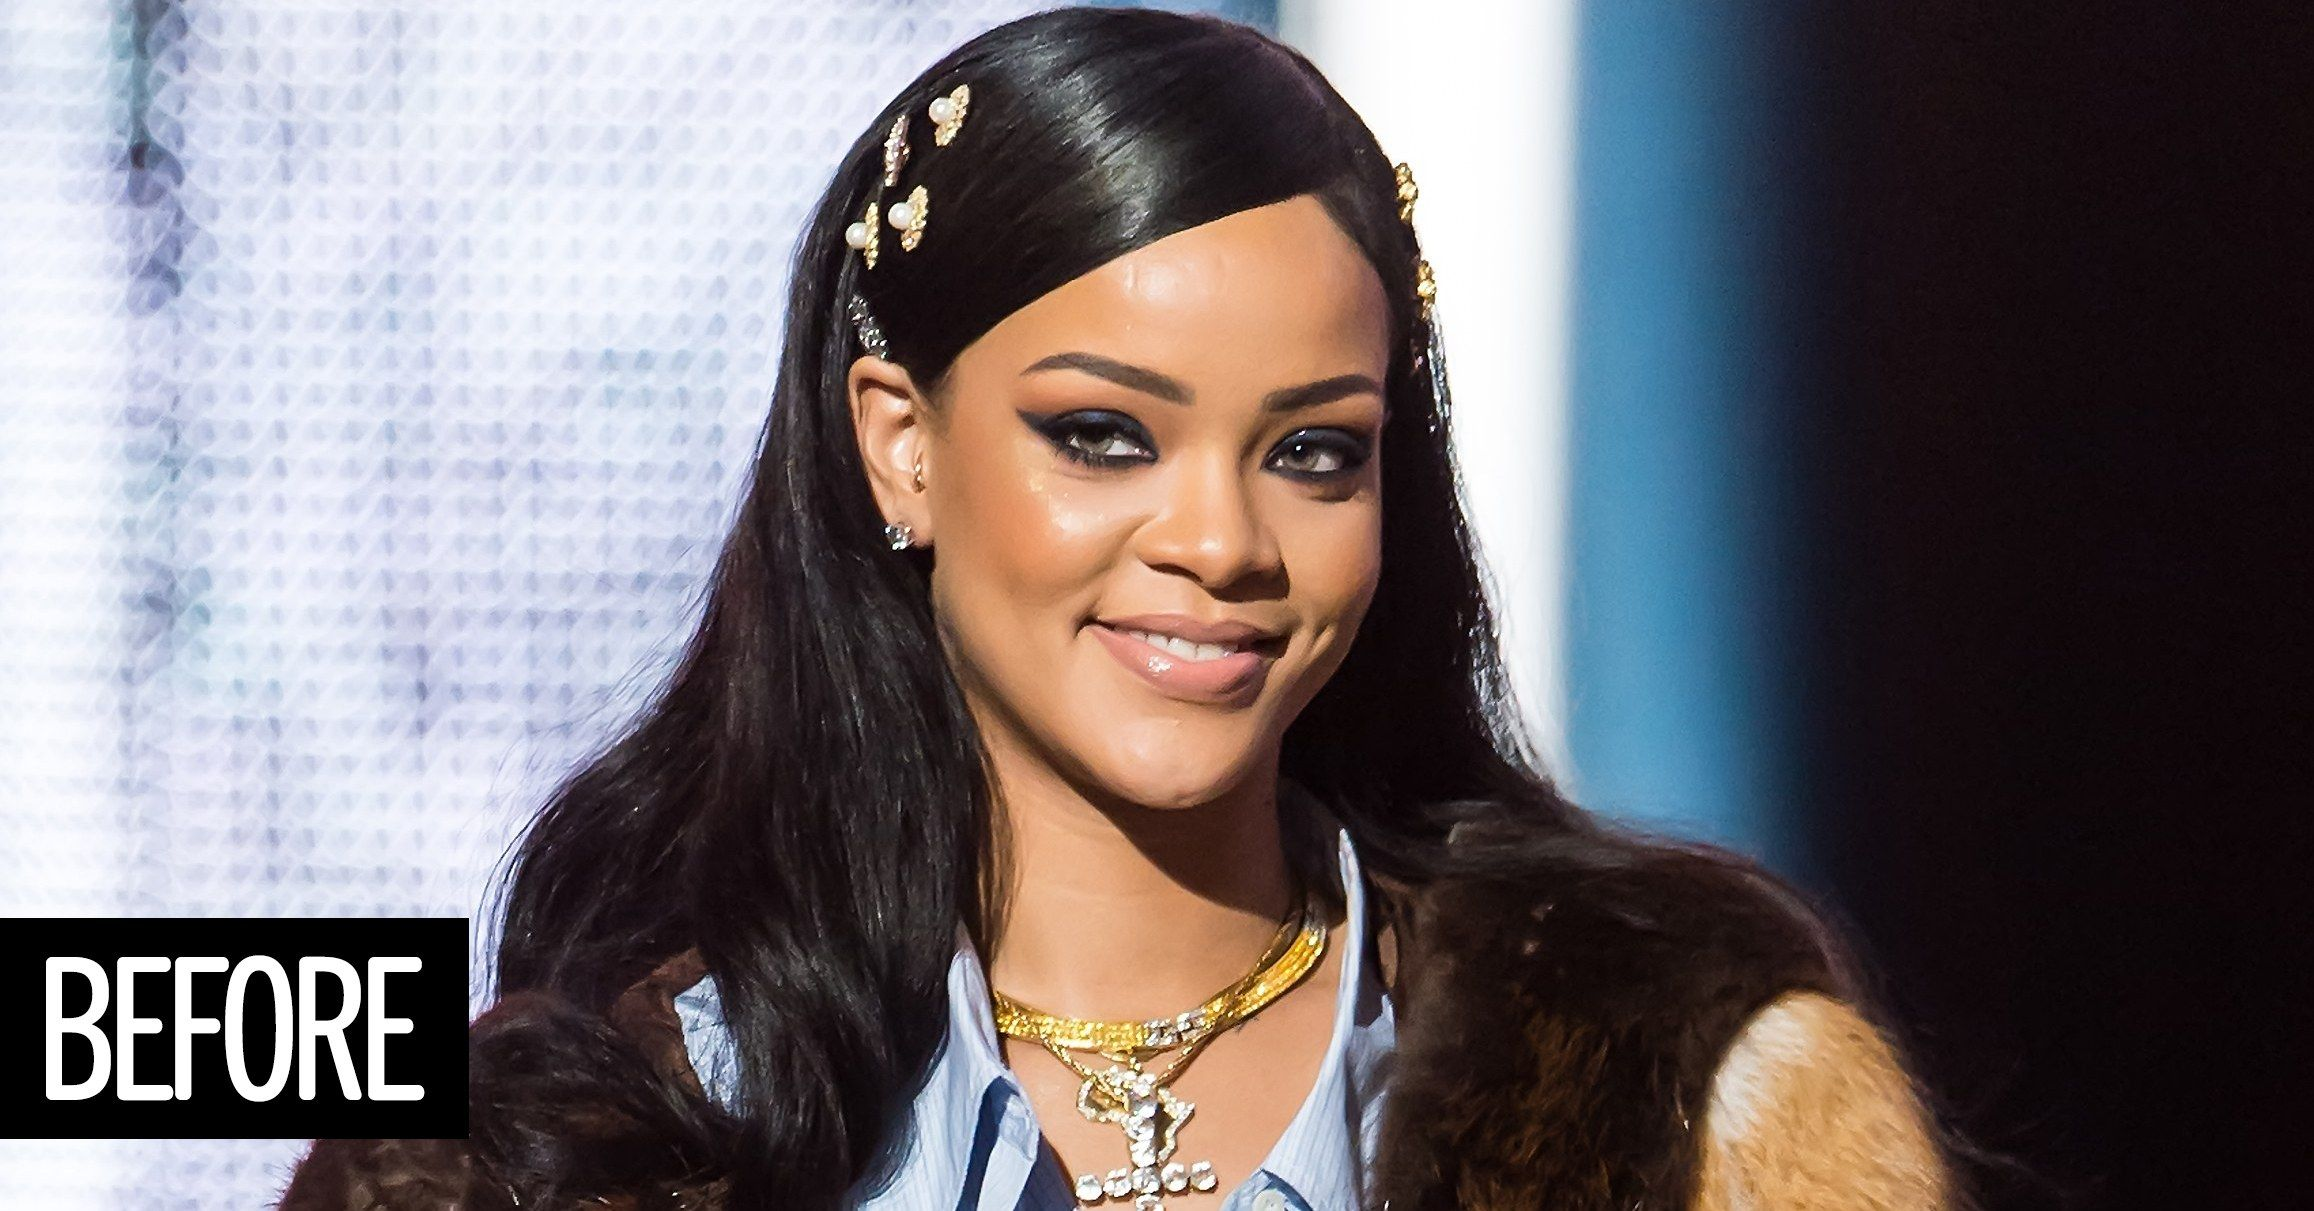 Rihannas Cute New Bangs Are Here To Inspire Your Next Haircut